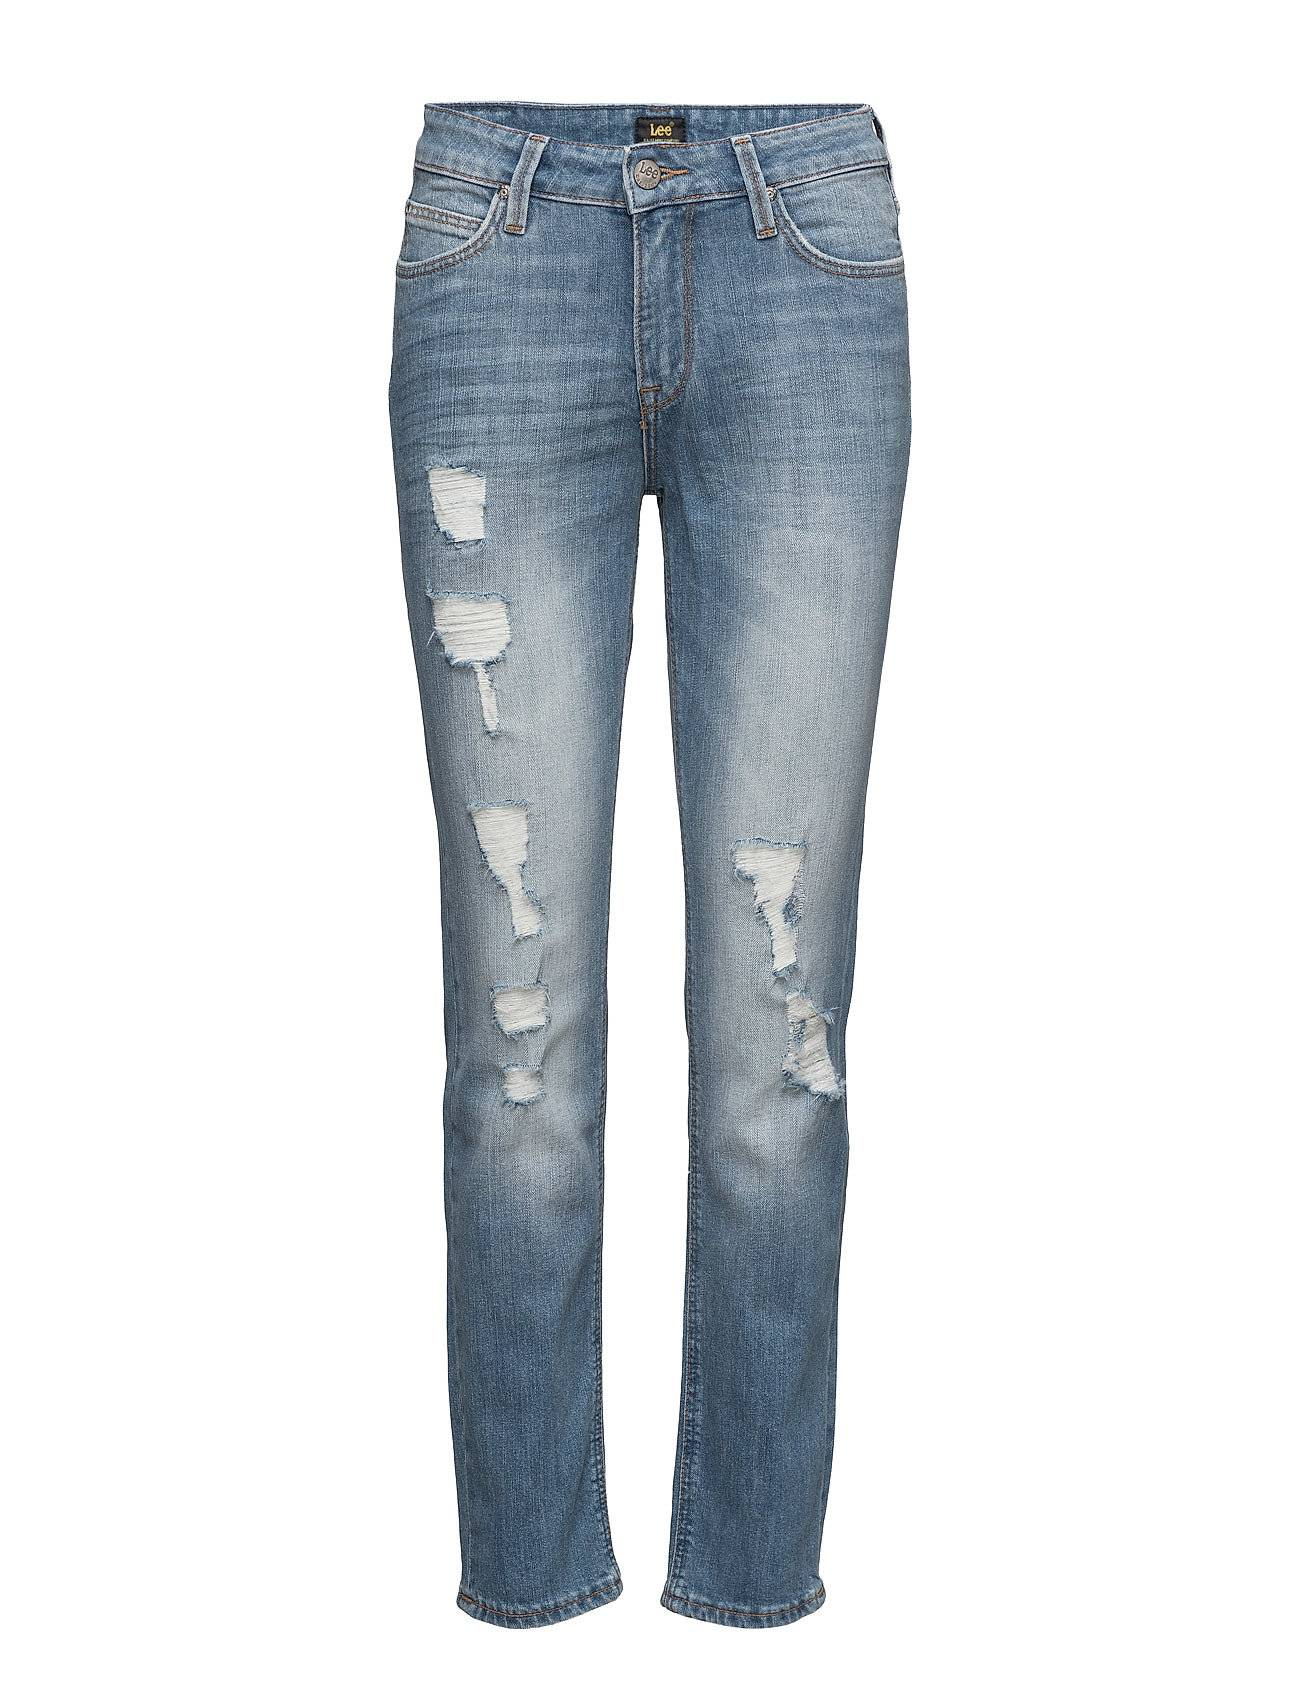 Lee Jeans Elly Pacific